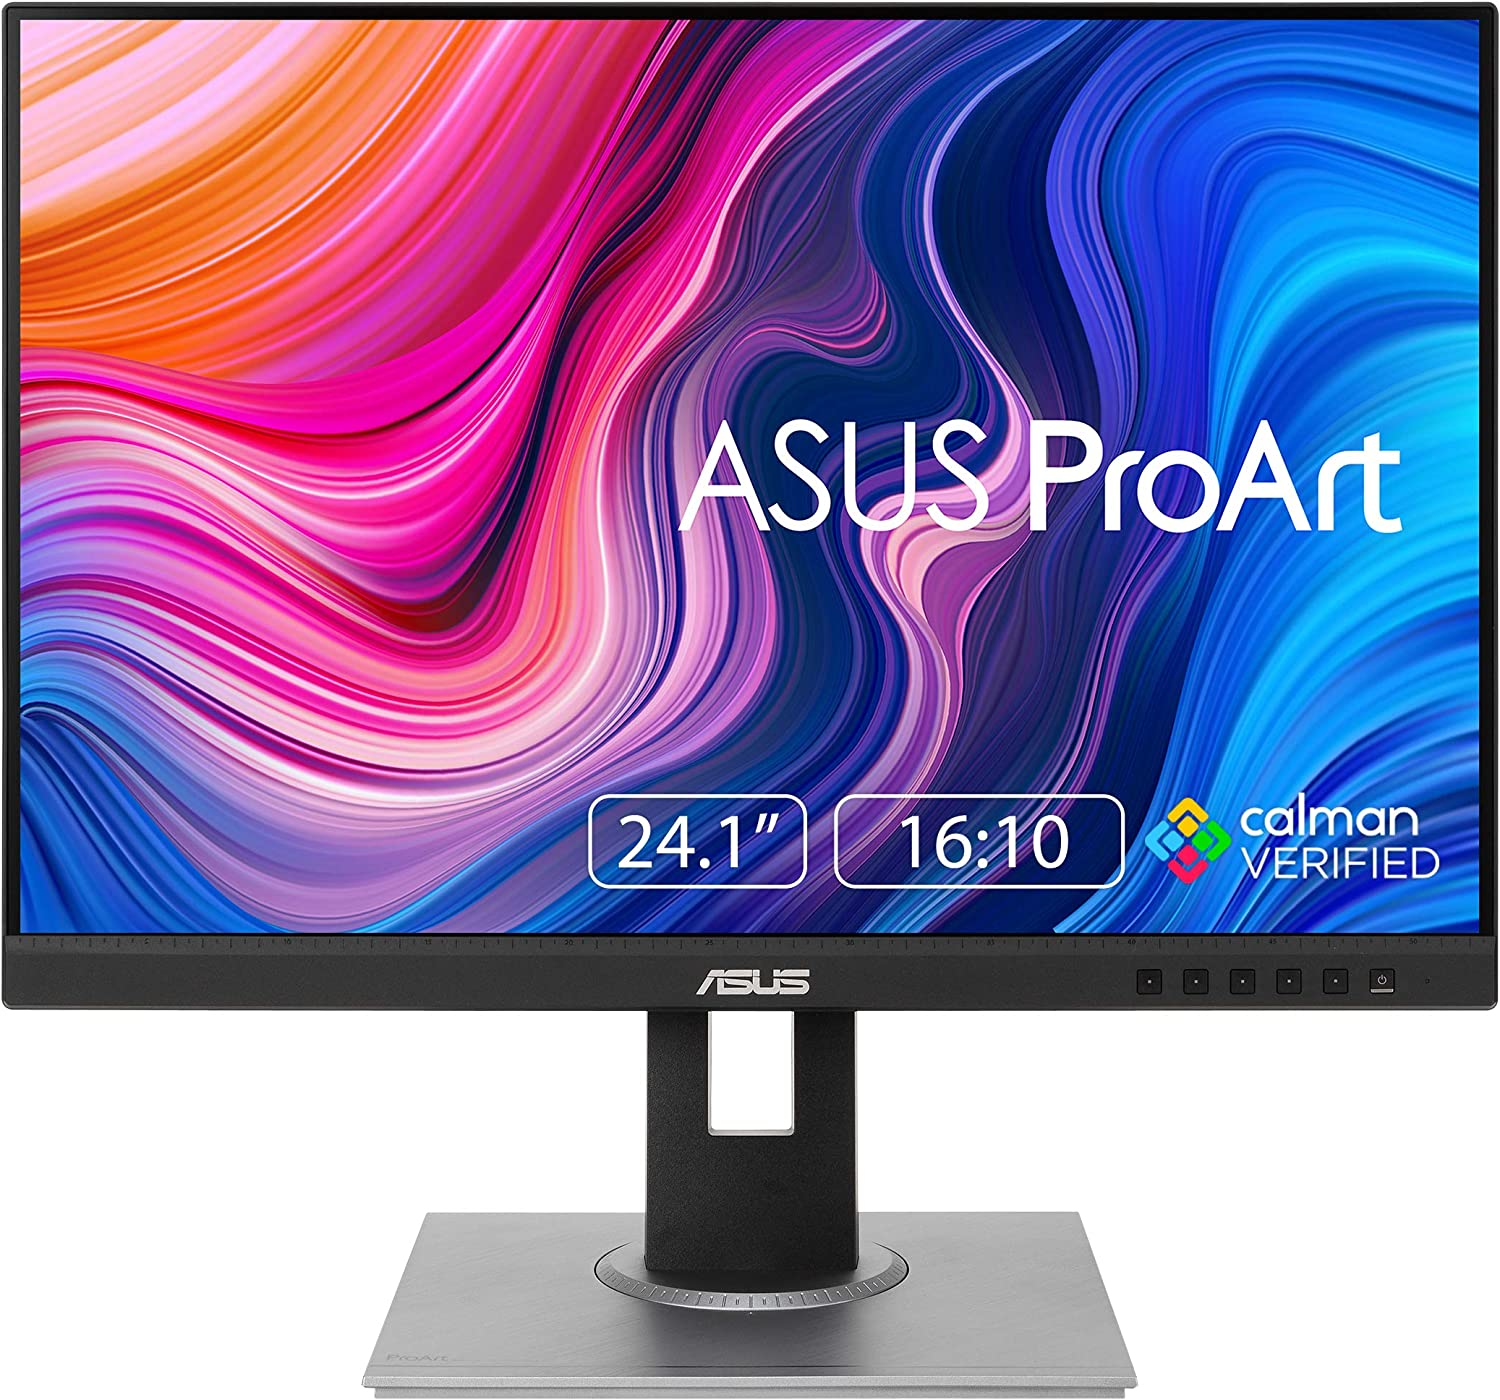 ASUS ProArt PA248Q vertical monitor for graphic designing